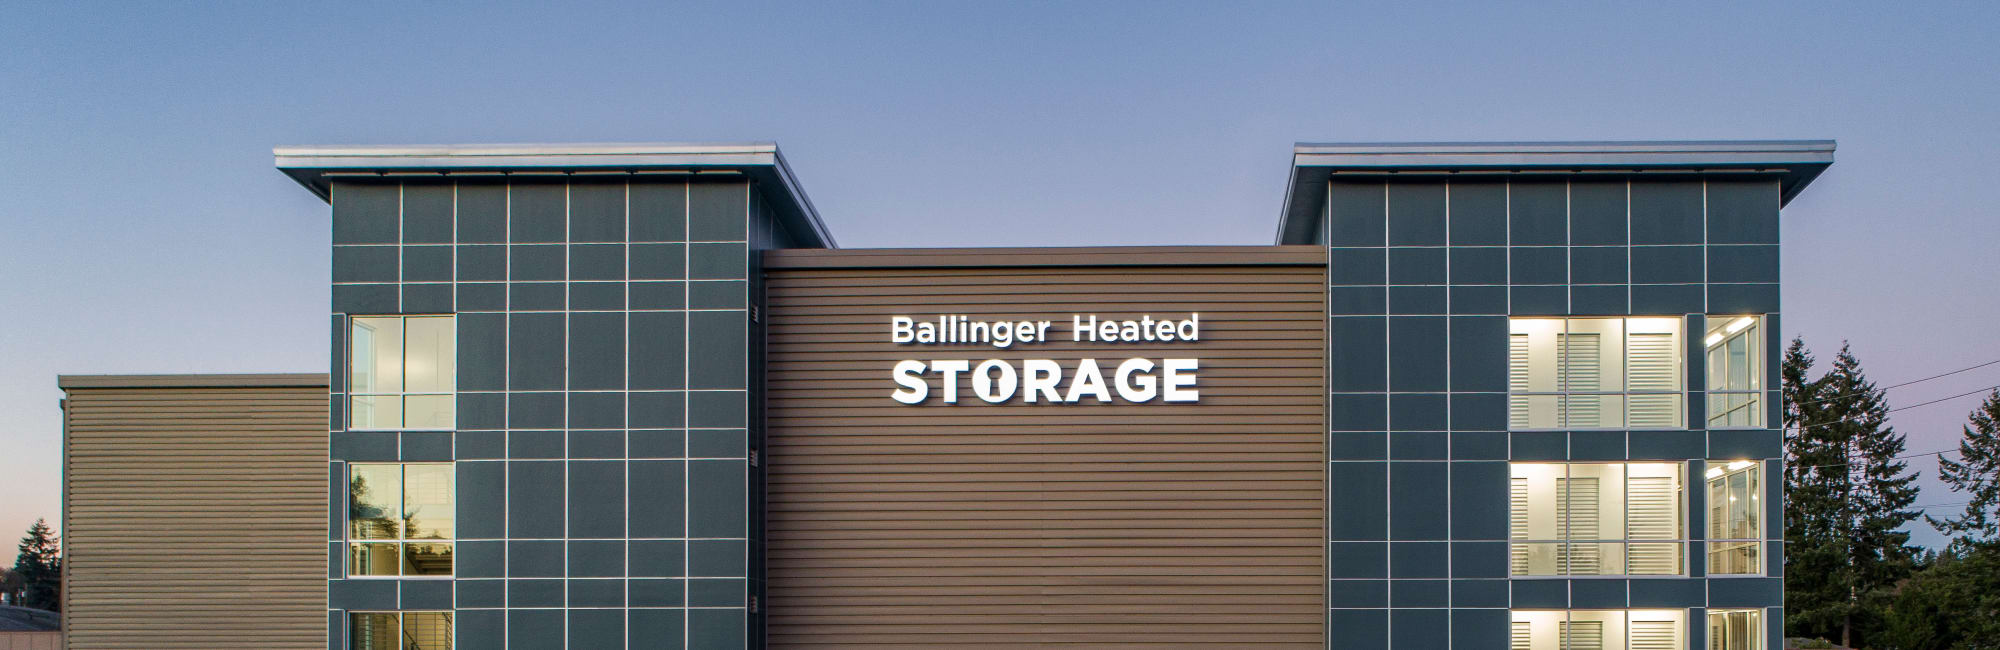 Self storage features at Ballinger Heated Storage in Shoreline, Washington